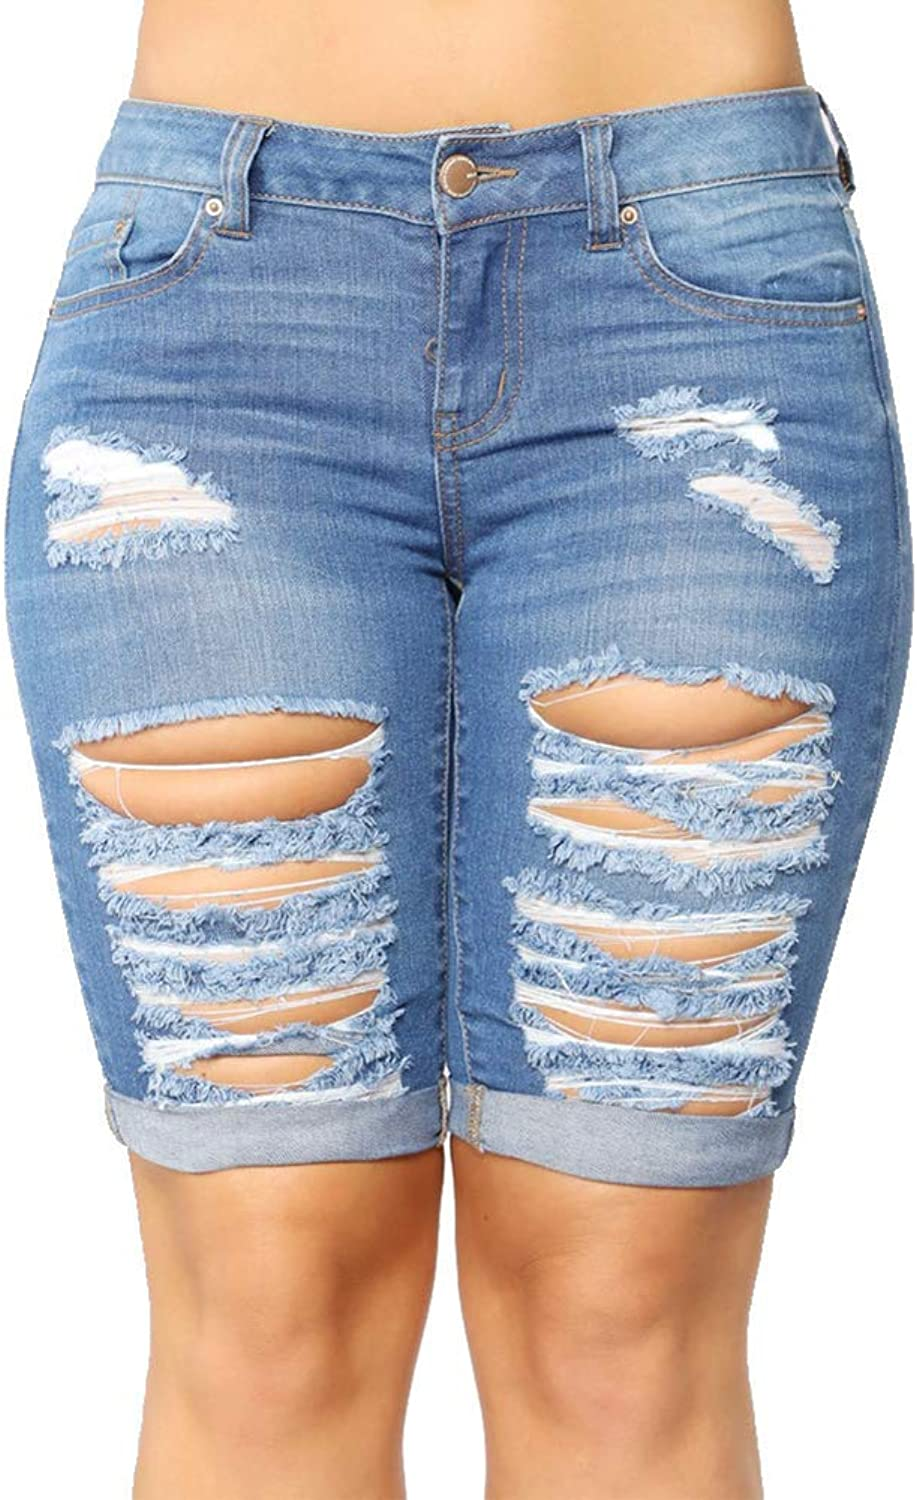 CLOTPUS Women Mid Waist Skinny Shorts Ripped Jeans with Holes Distressed Denim Pants